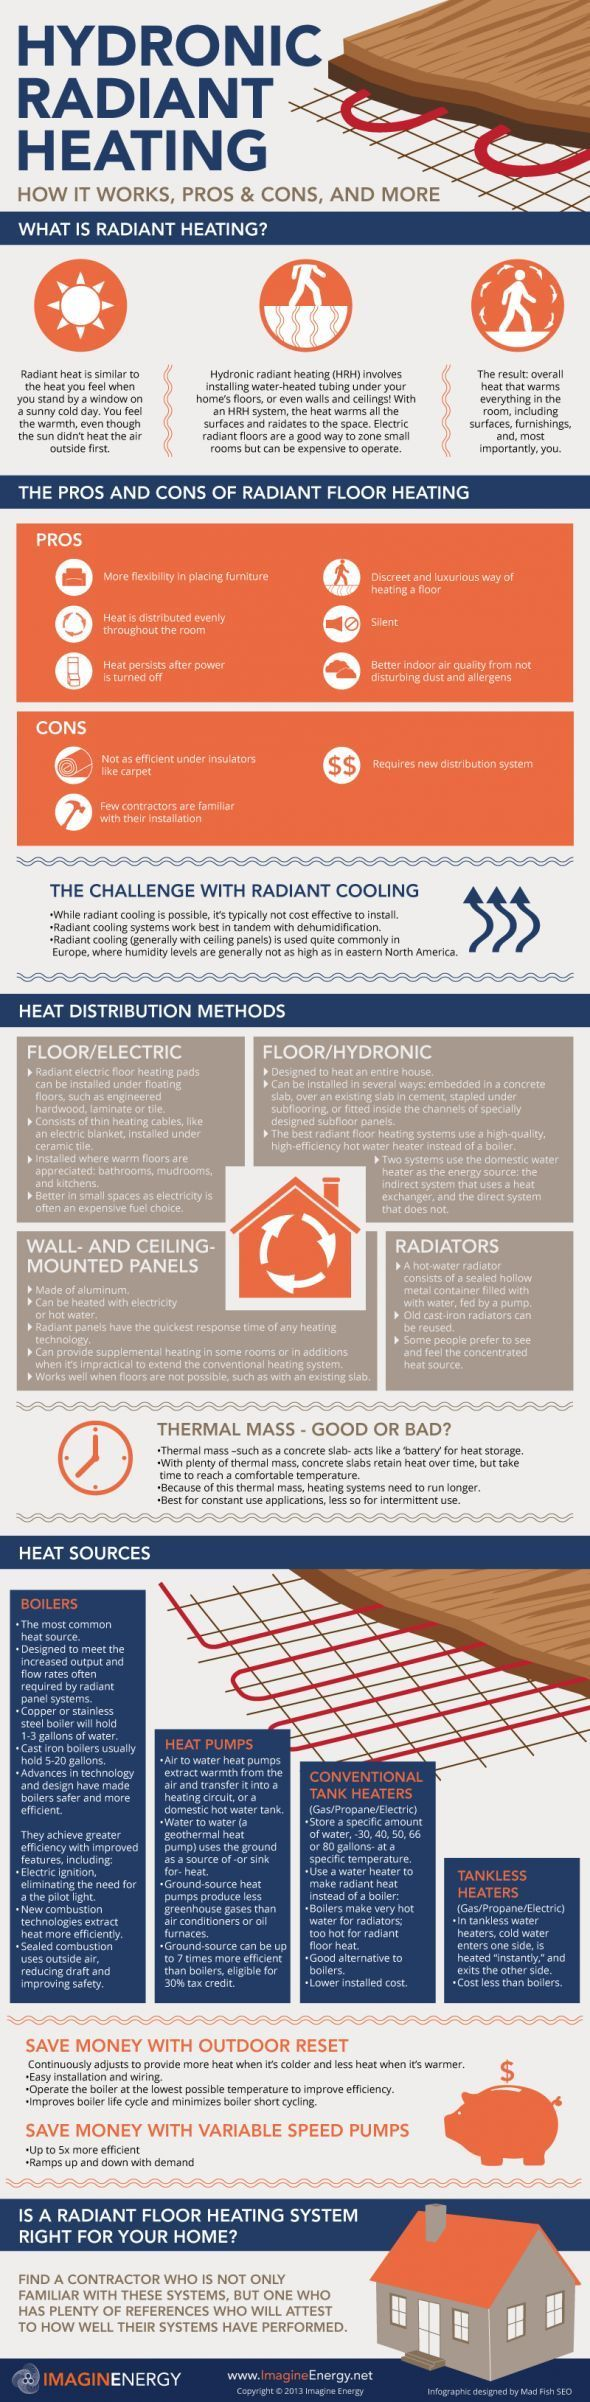 Your Guide To Radiant Floor Heating The Pros And Cons Radiant